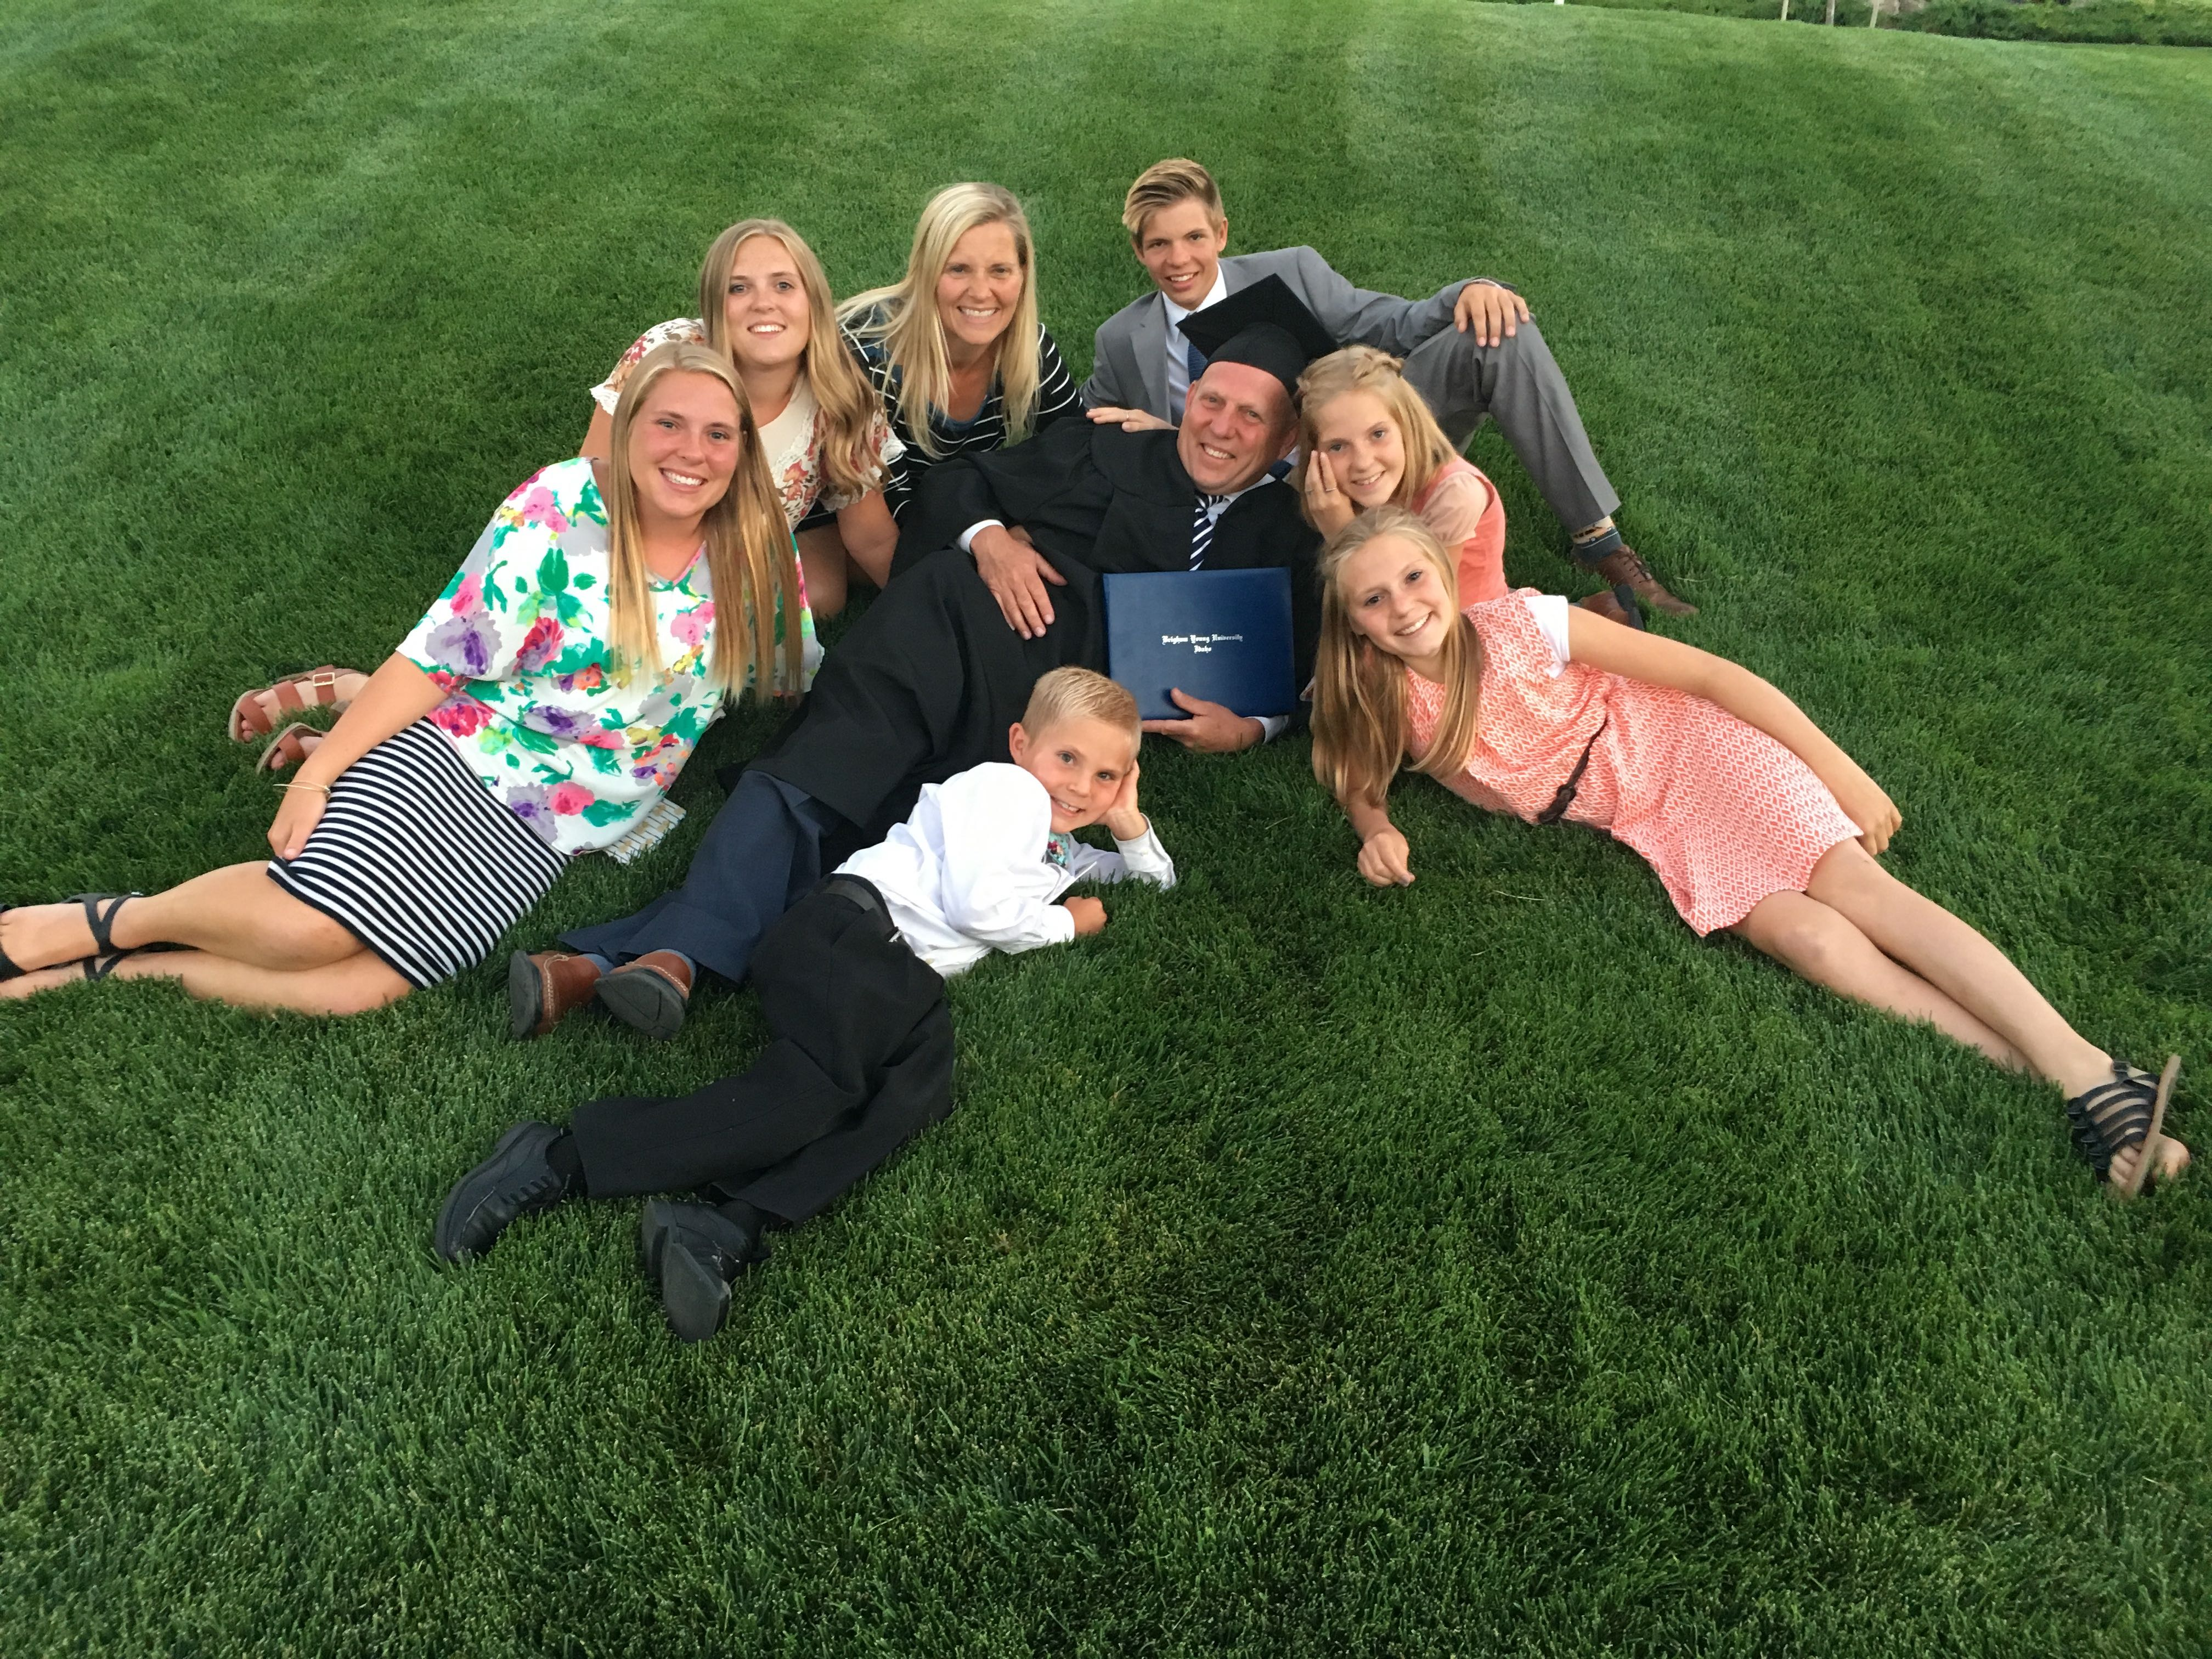 The Waldron family poses together after the graduation of Tom Waldron from BYU-Idaho in 2017.